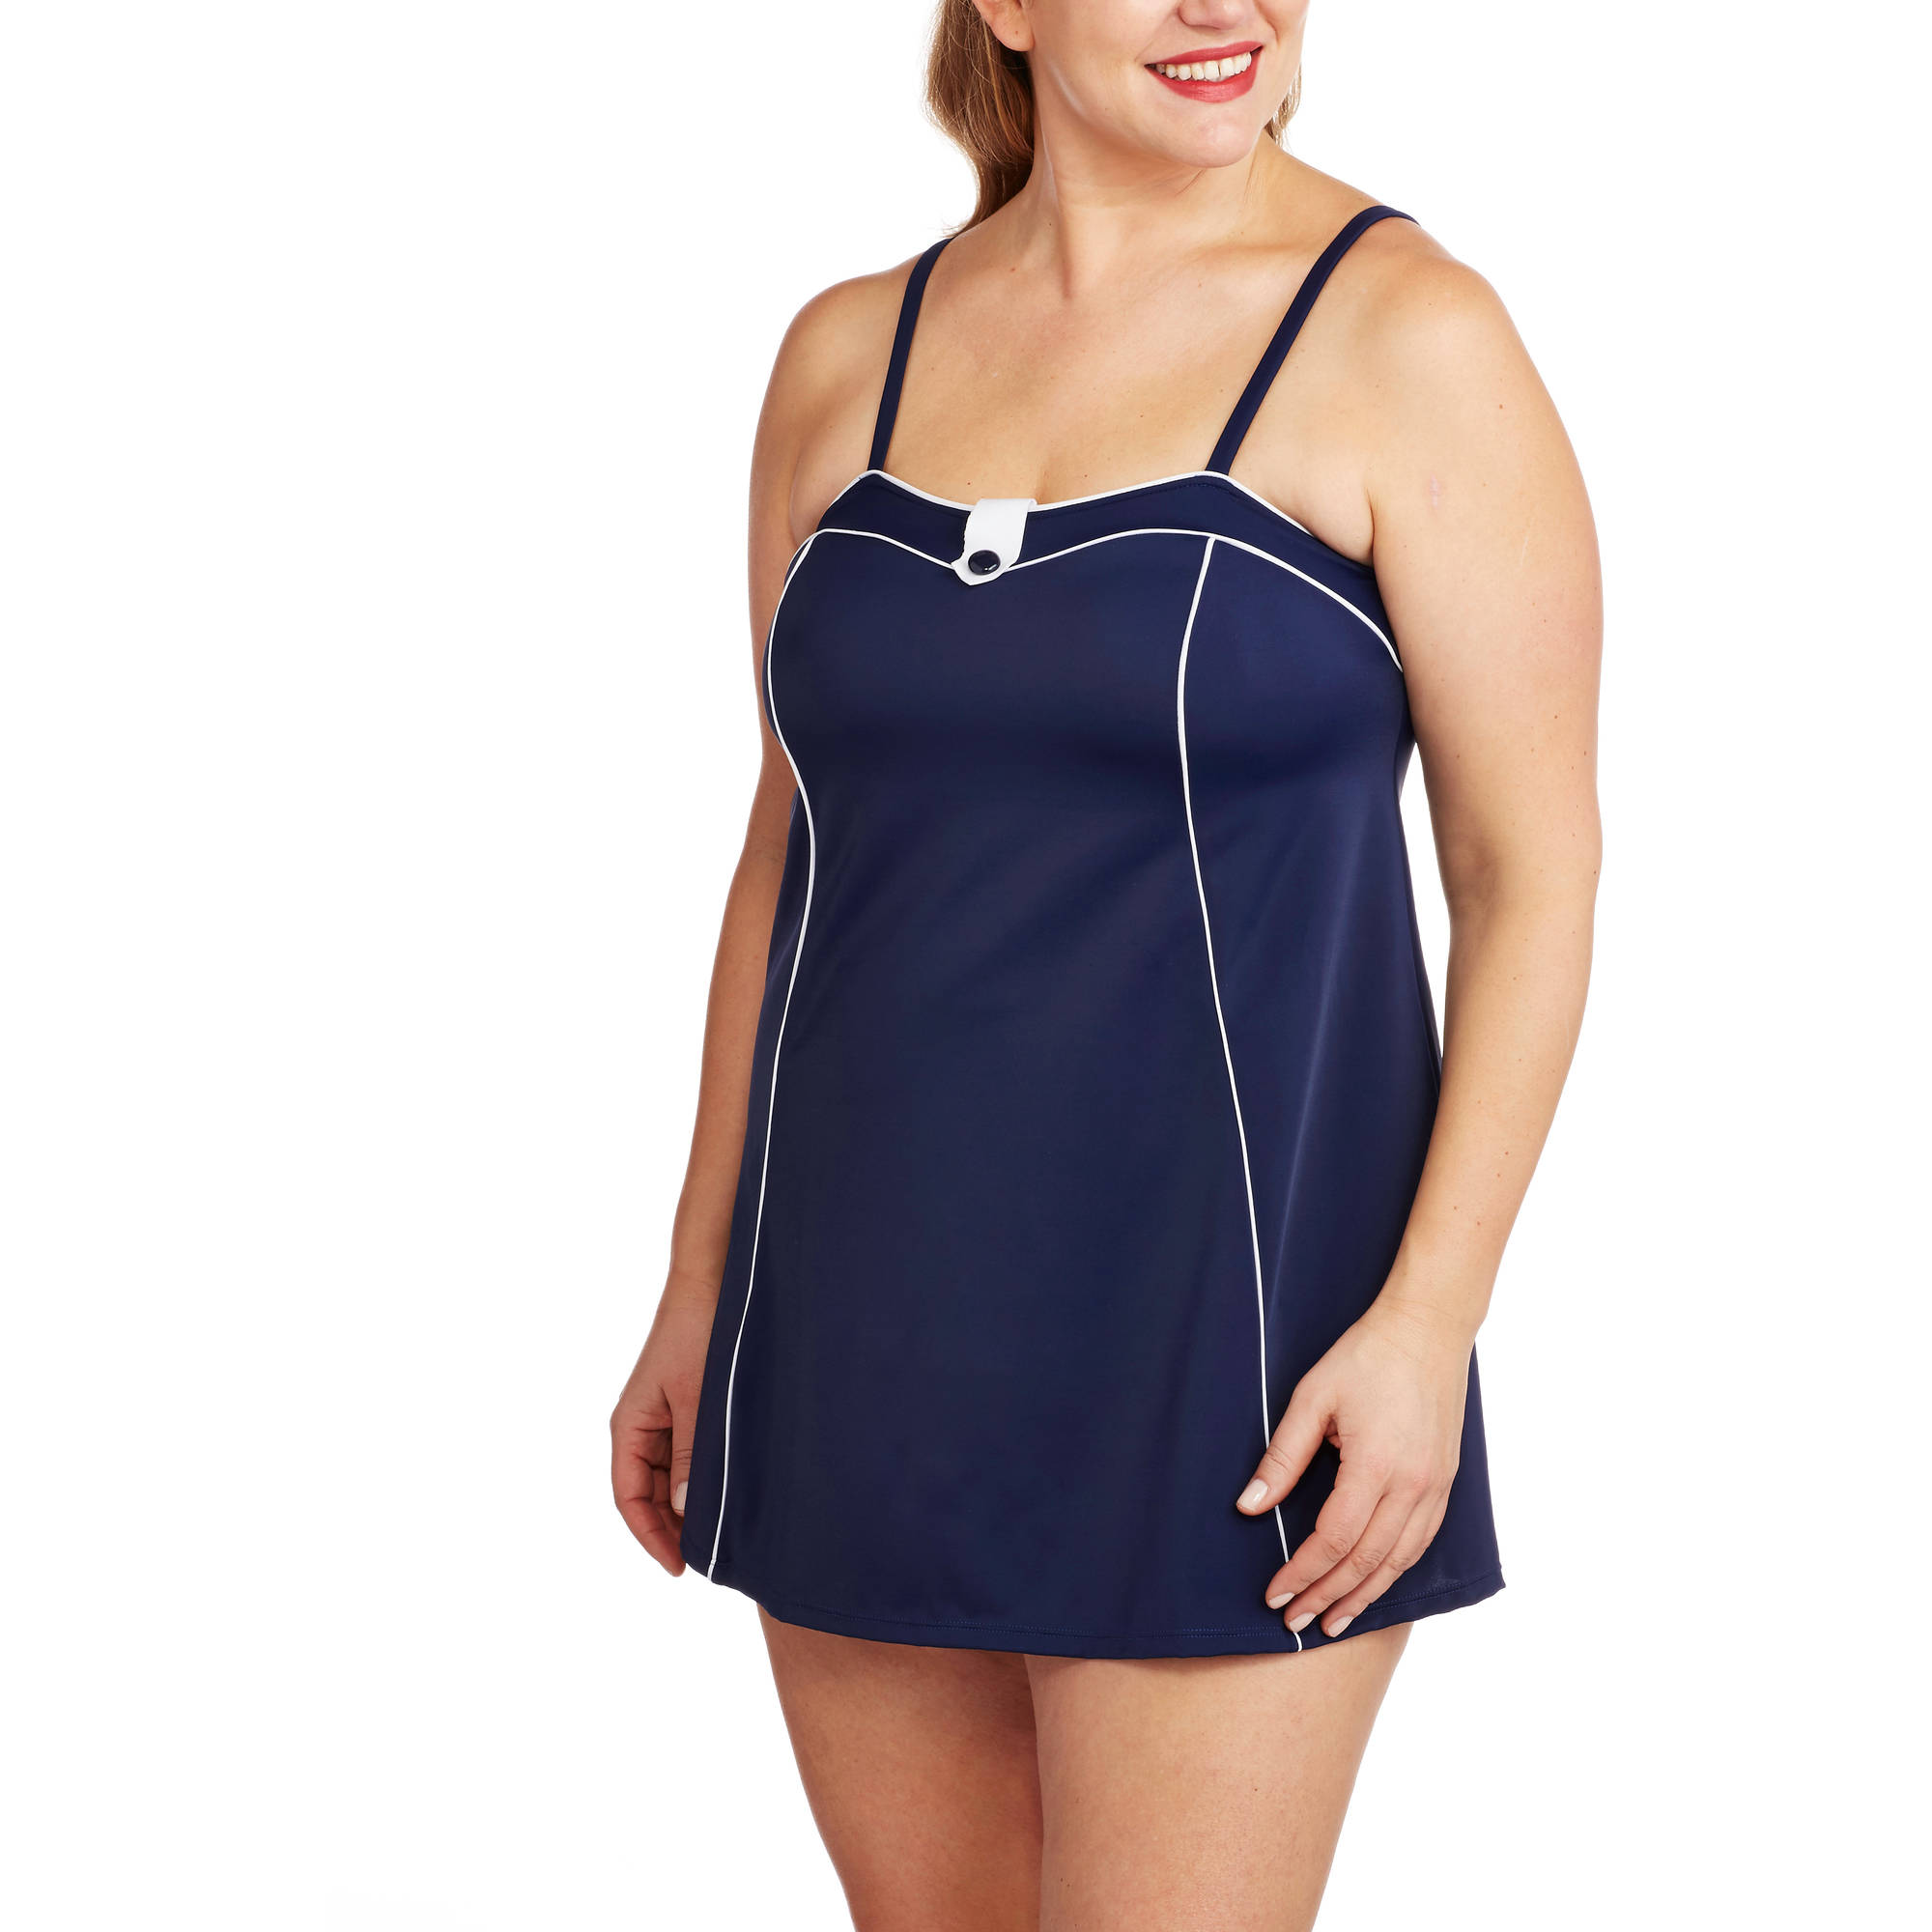 Suddenly Slim By Catalina Women's Plus-Size Retro Slimming Sailor Swimdress